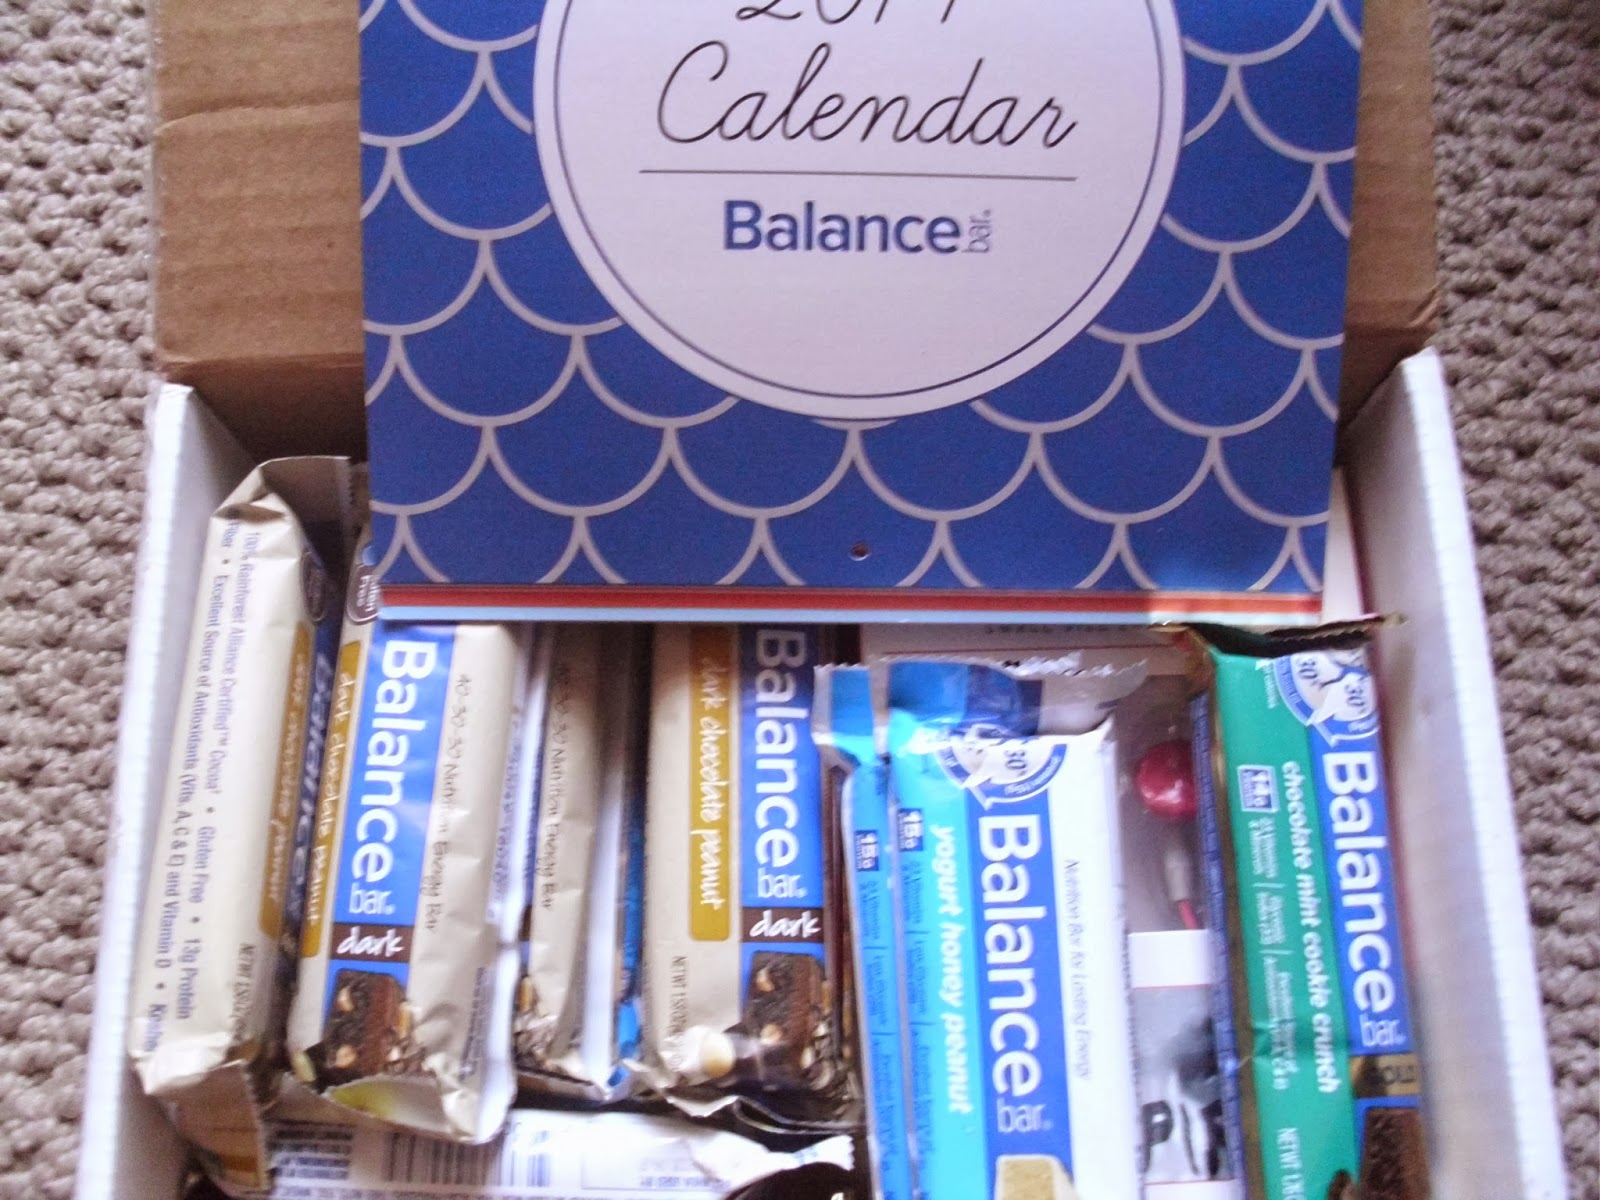 Balance Bars Are Delicious And Have An Excellent Balance Of